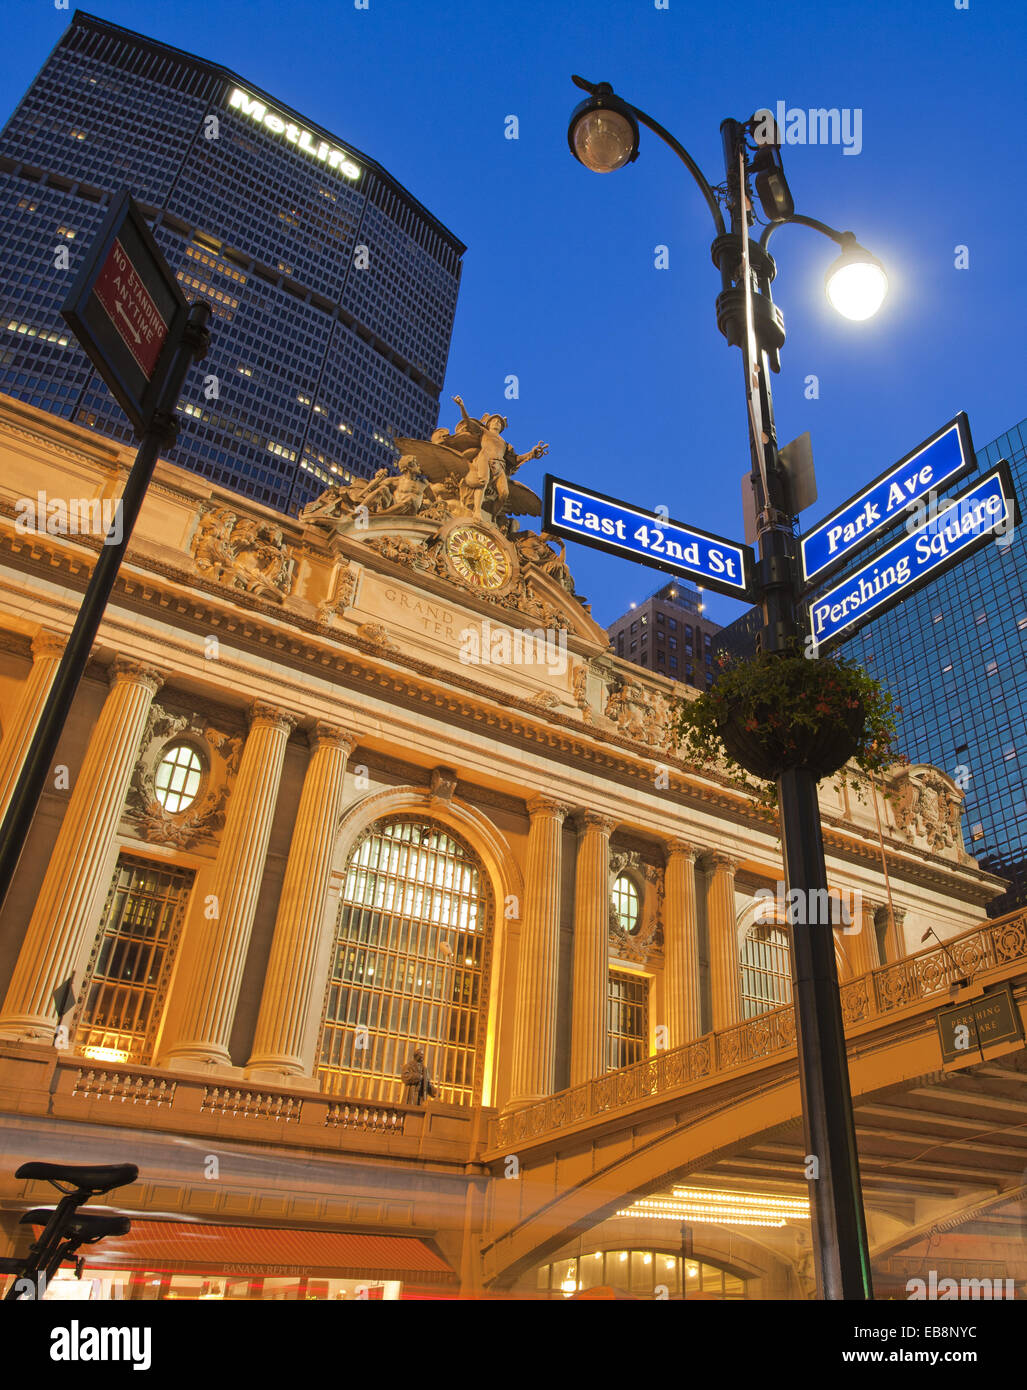 East 42nd Street and Park Avenue street sign Grand Central Station or Grand Central Terminal Pershing Bridge Met - Stock Image